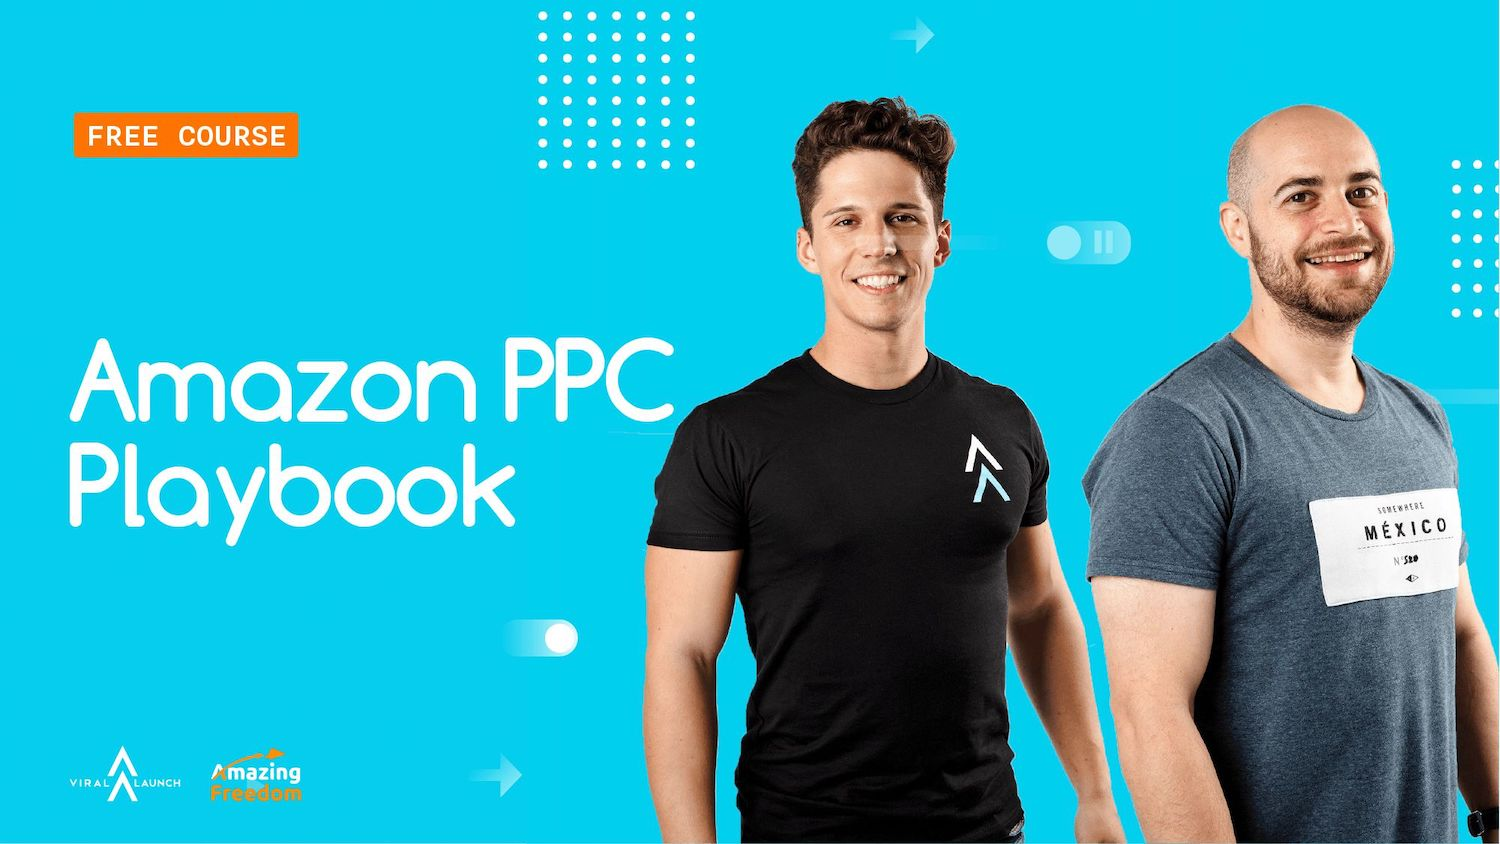 Amazon Advertising PPC Playbook by Viral Launch